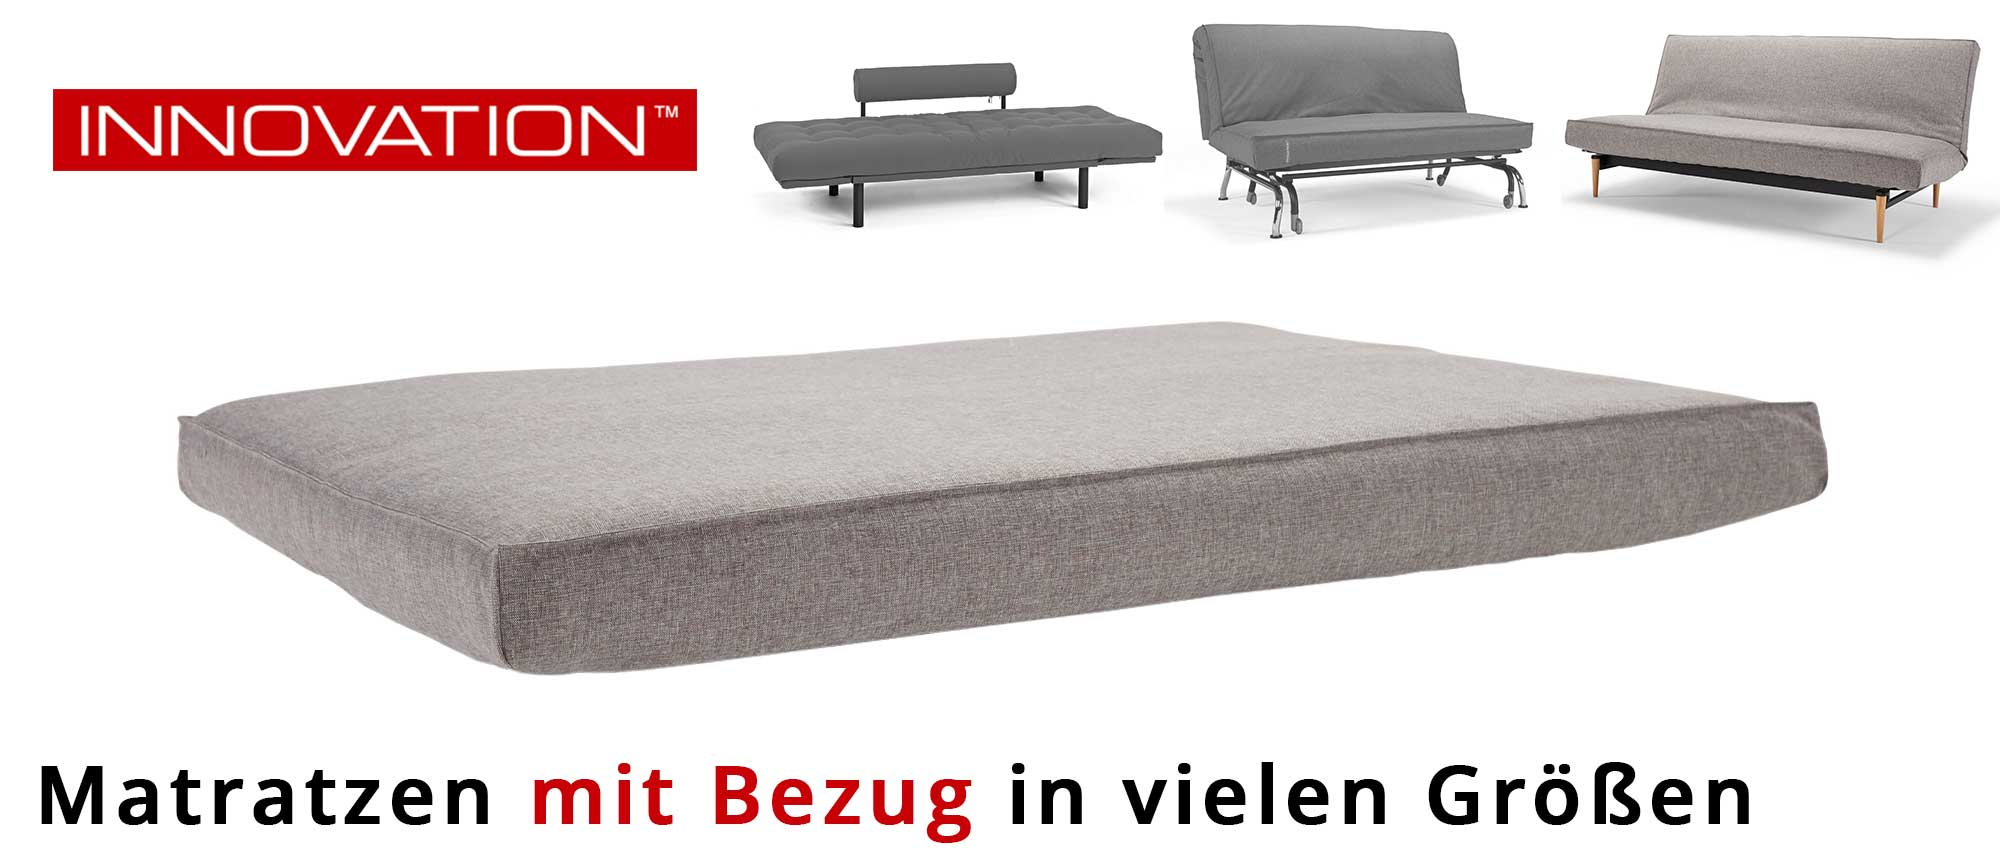 matratzen f r schlafsofas von innovation mit extra bezug. Black Bedroom Furniture Sets. Home Design Ideas